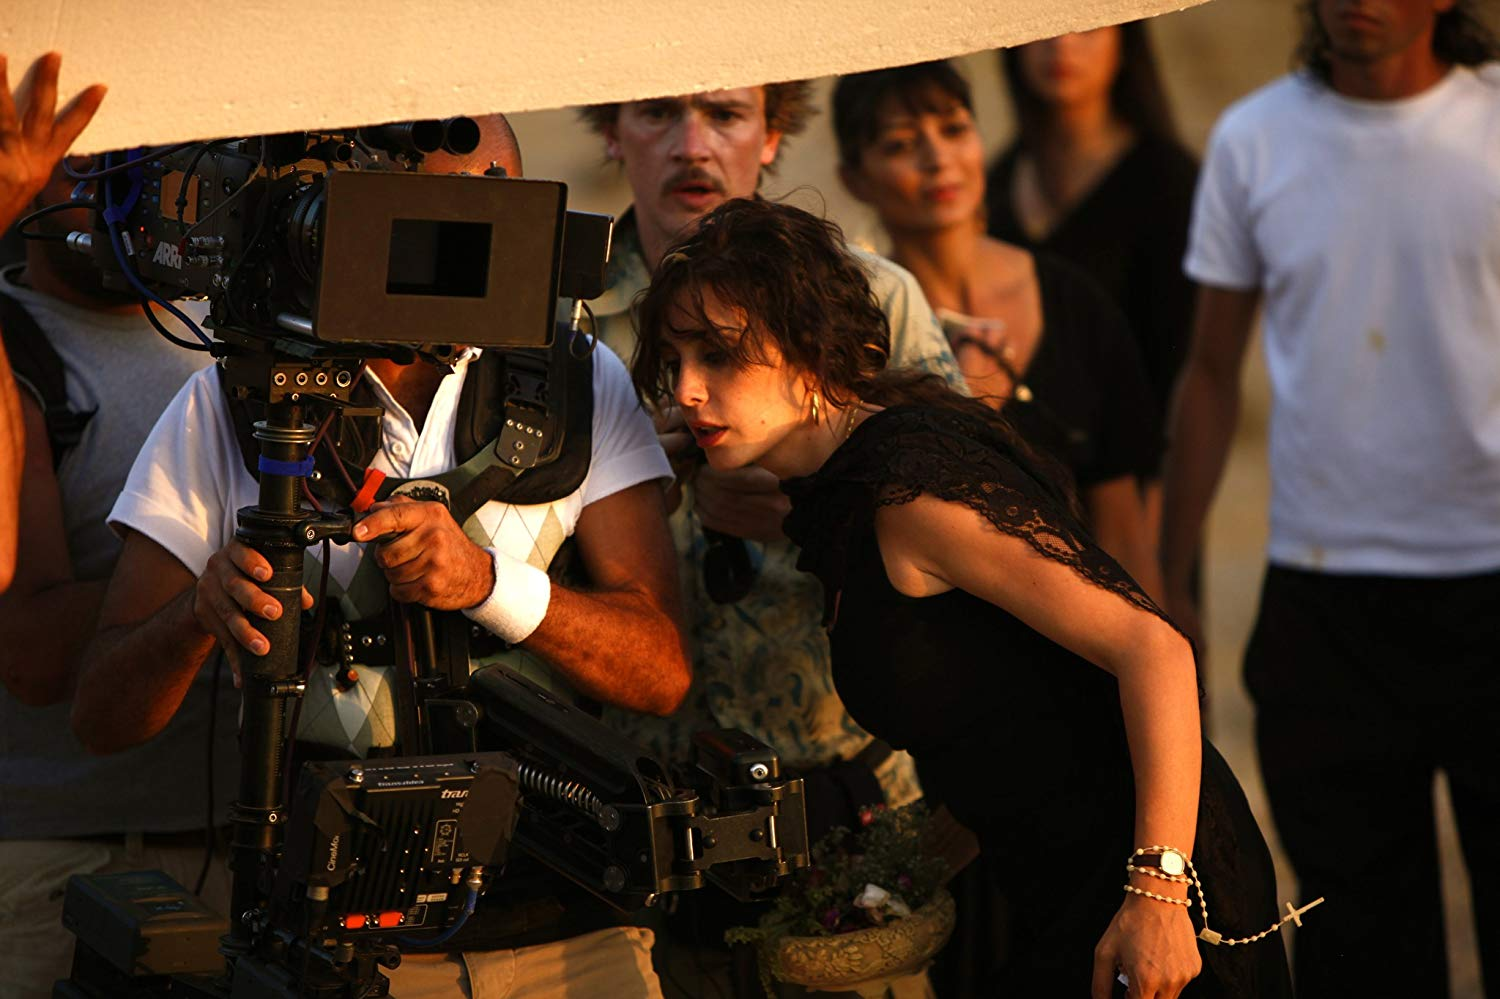 Nadine Labaki on the set of Where Do We Go Now? Photo: Sony Pictures